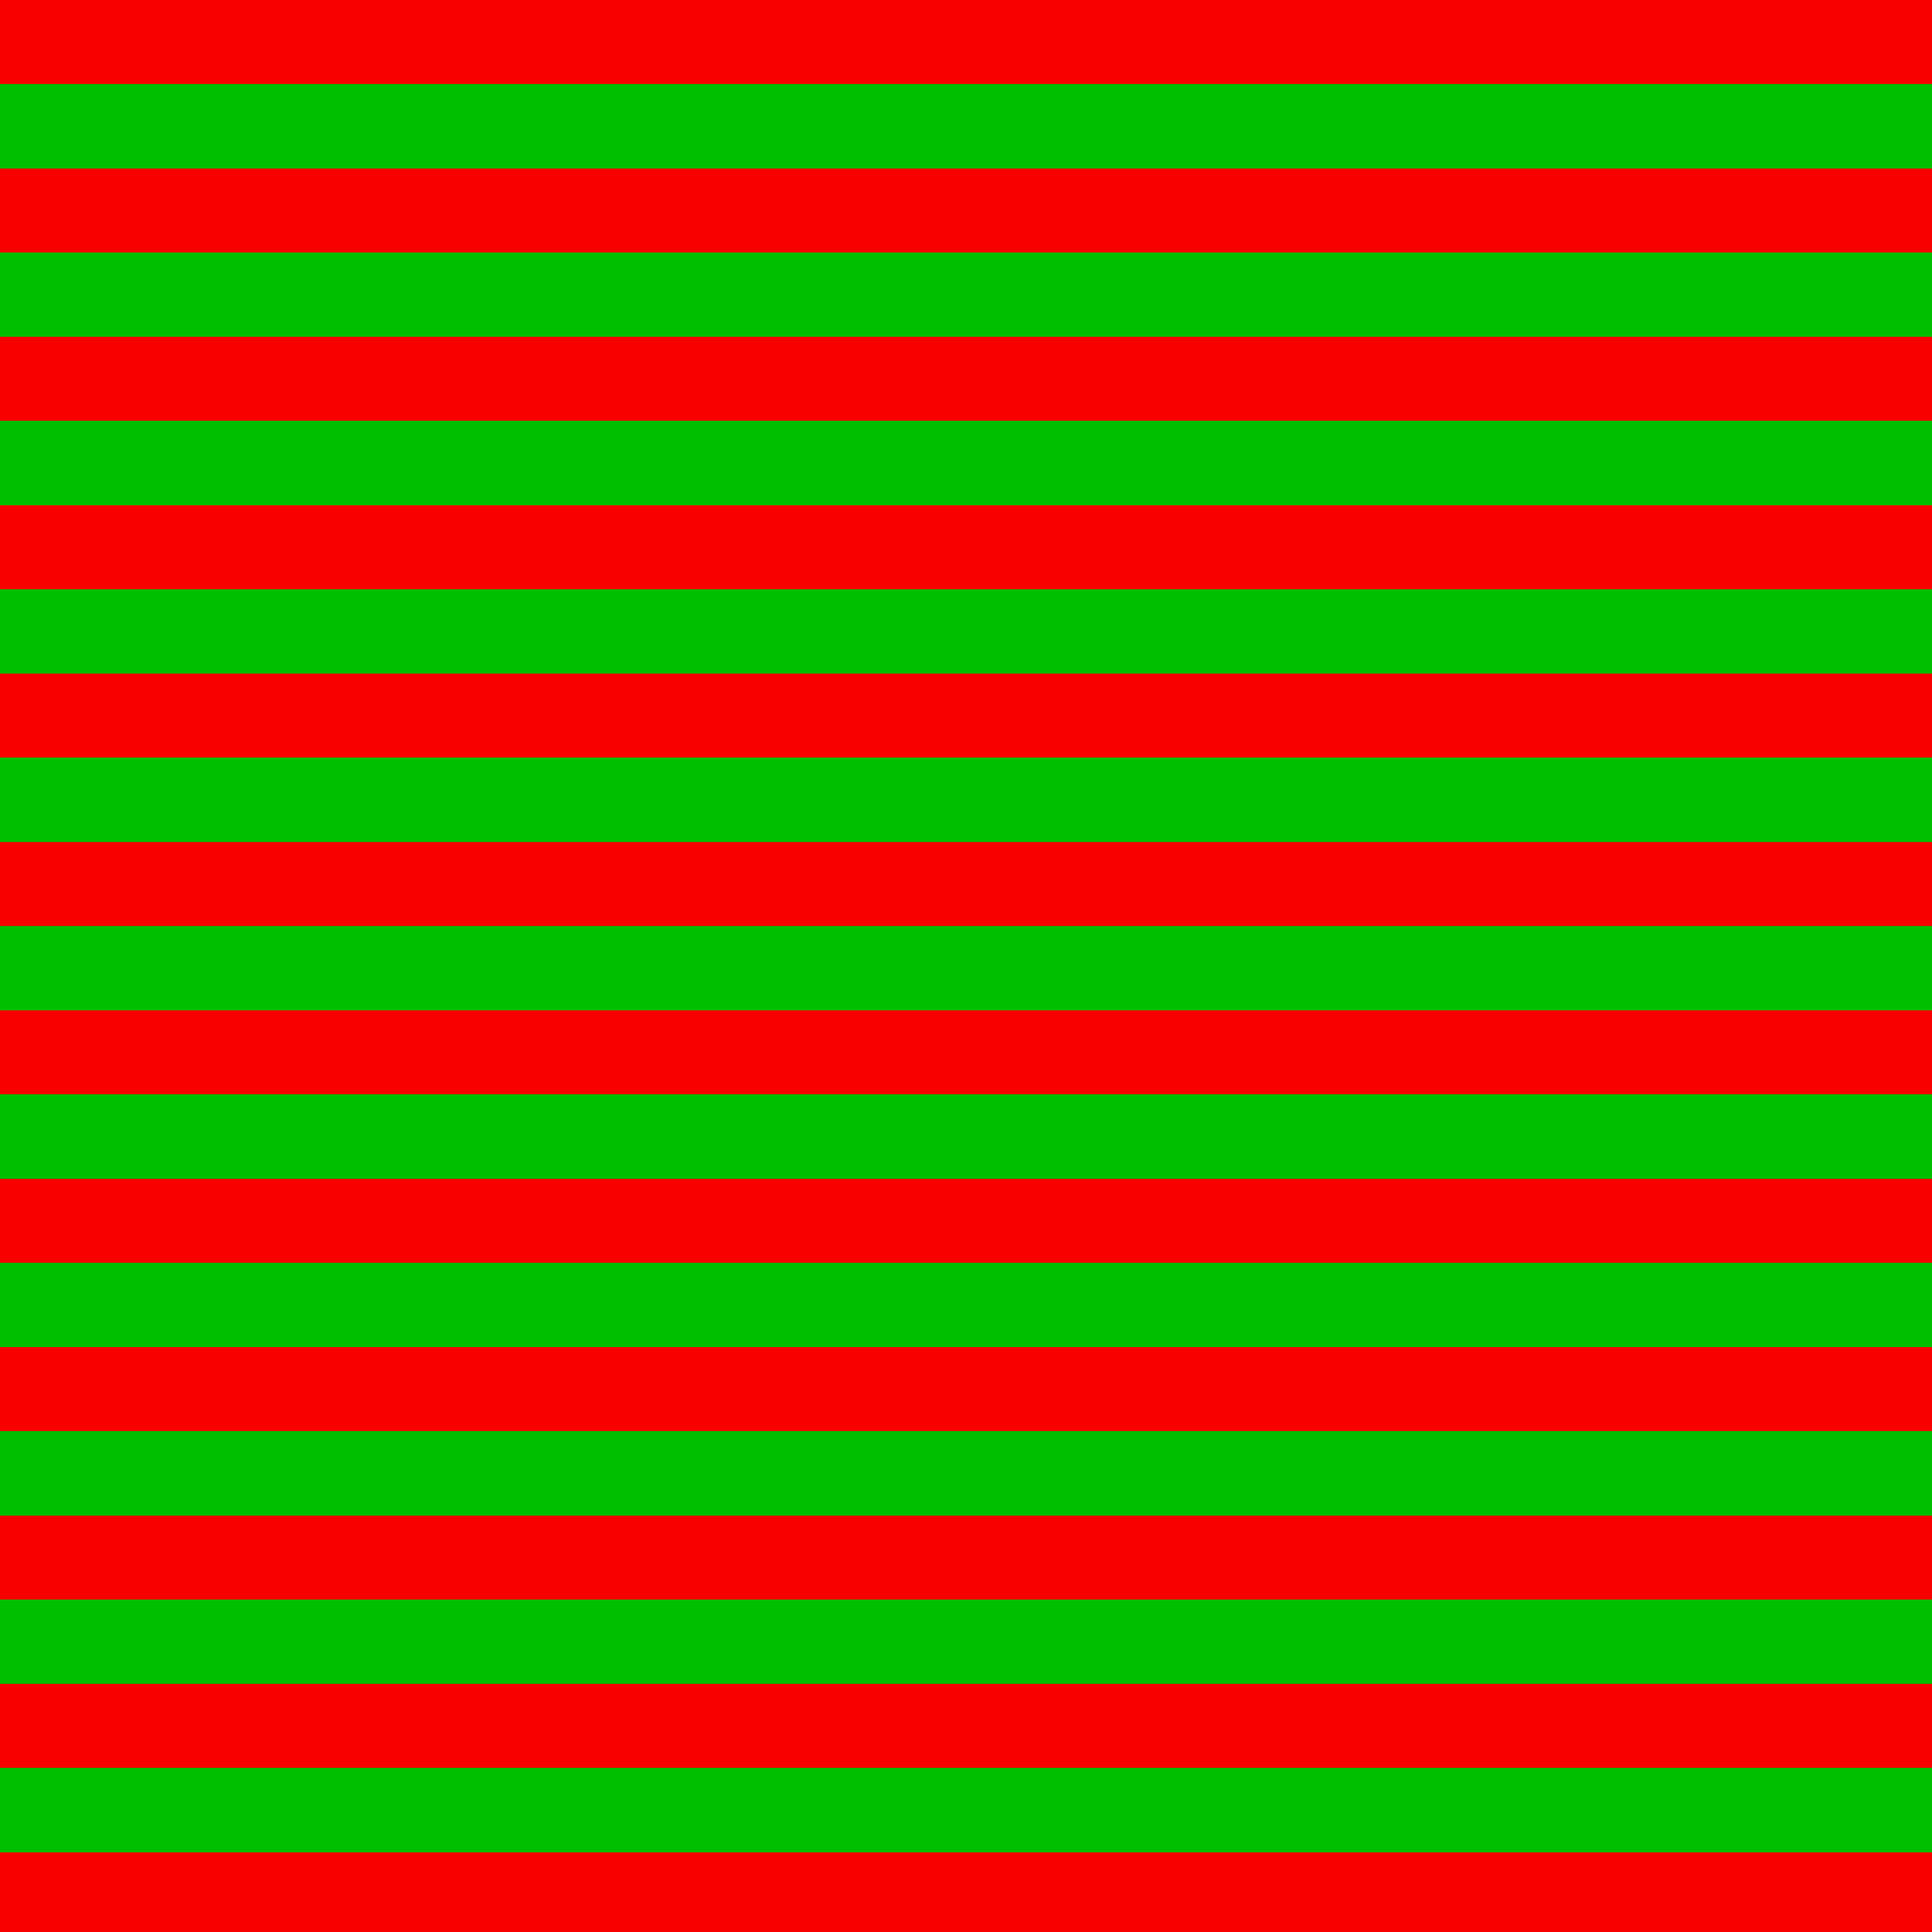 Green stripy clipart.